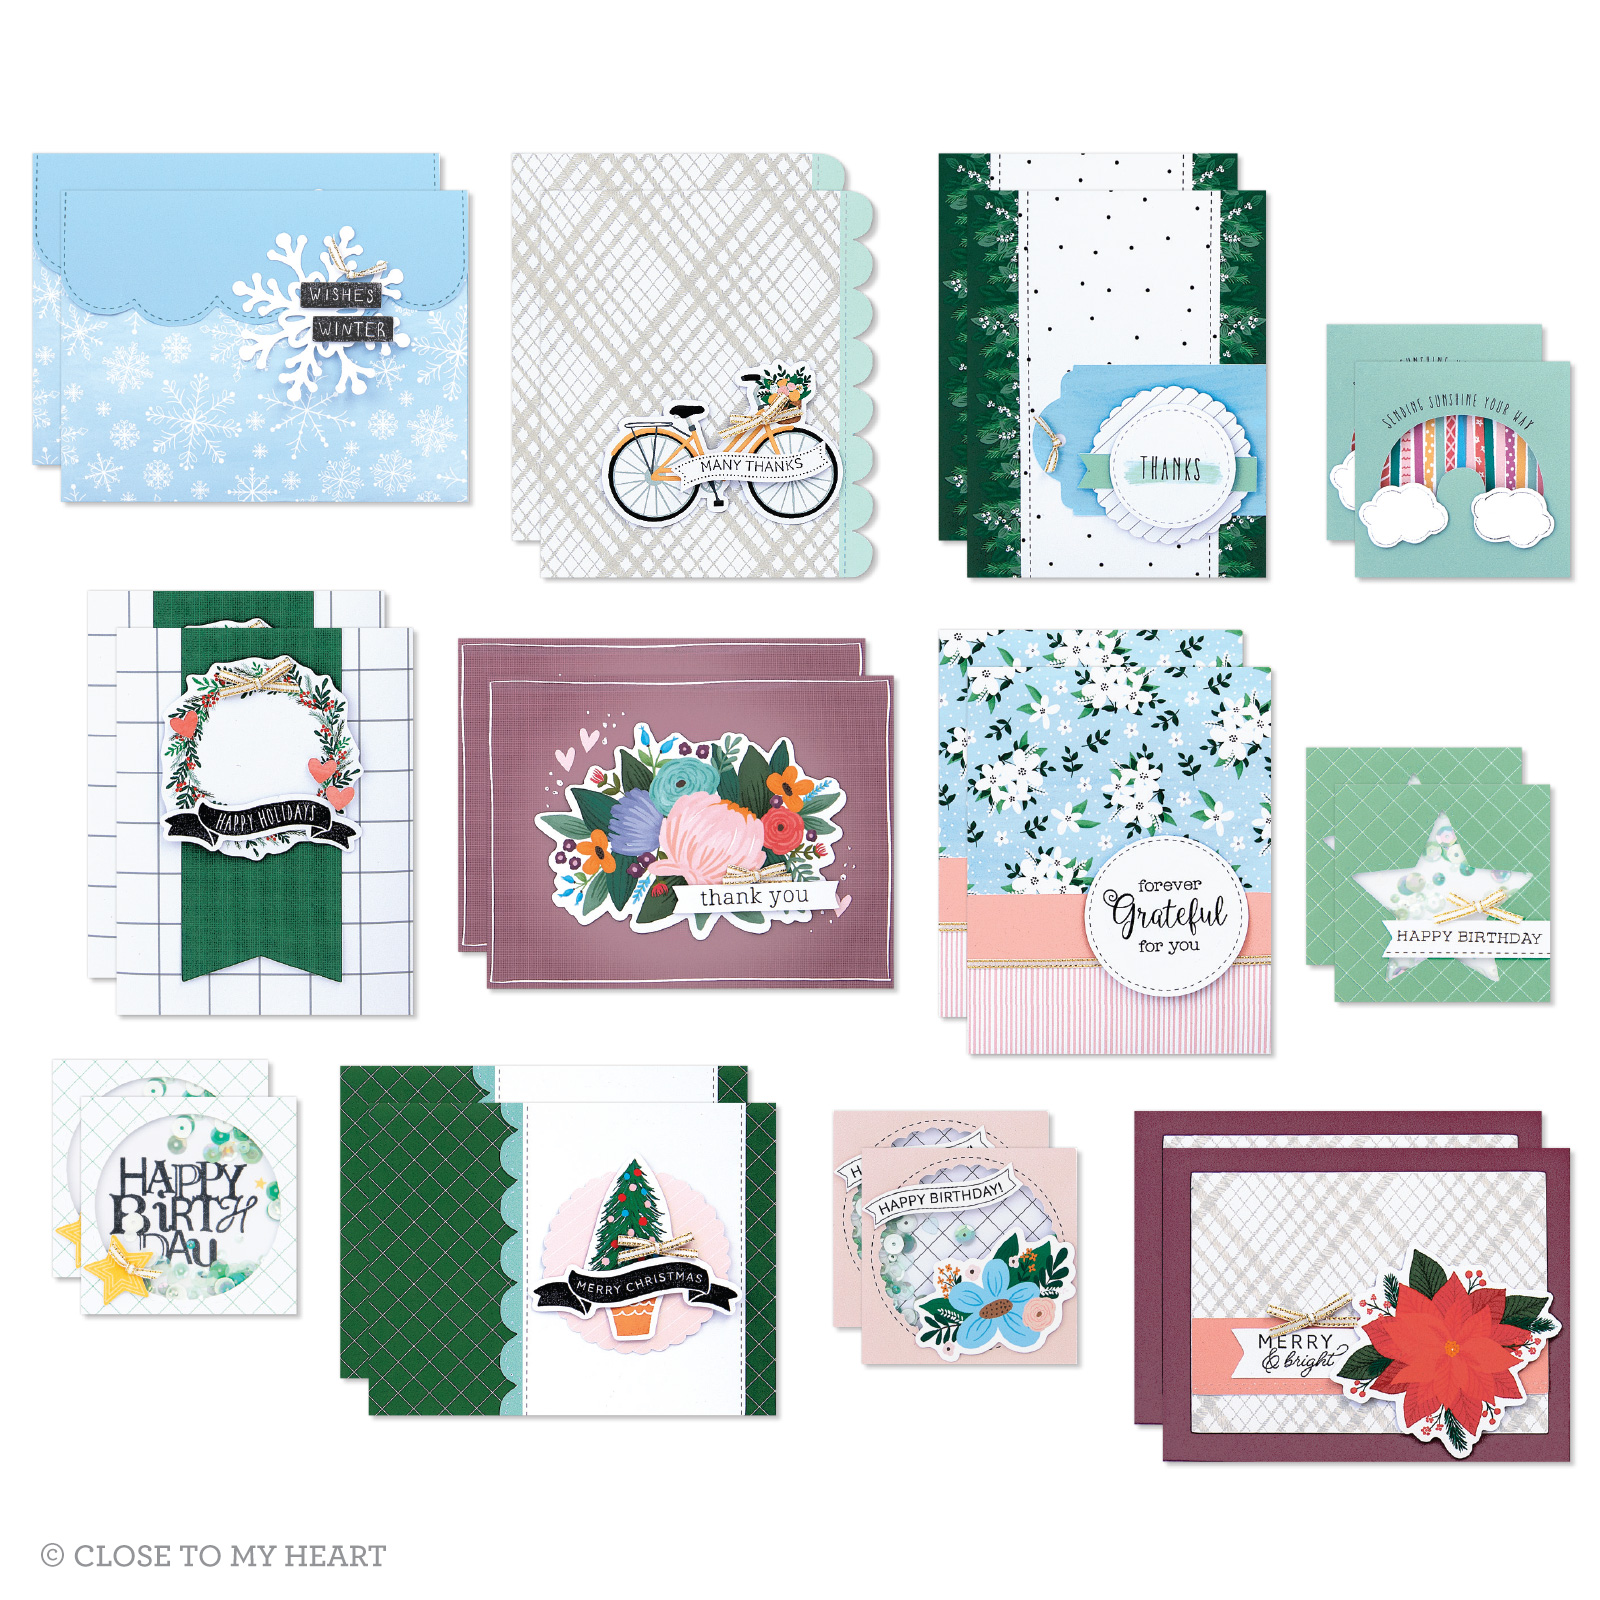 NEW Cardmaking Subscription!